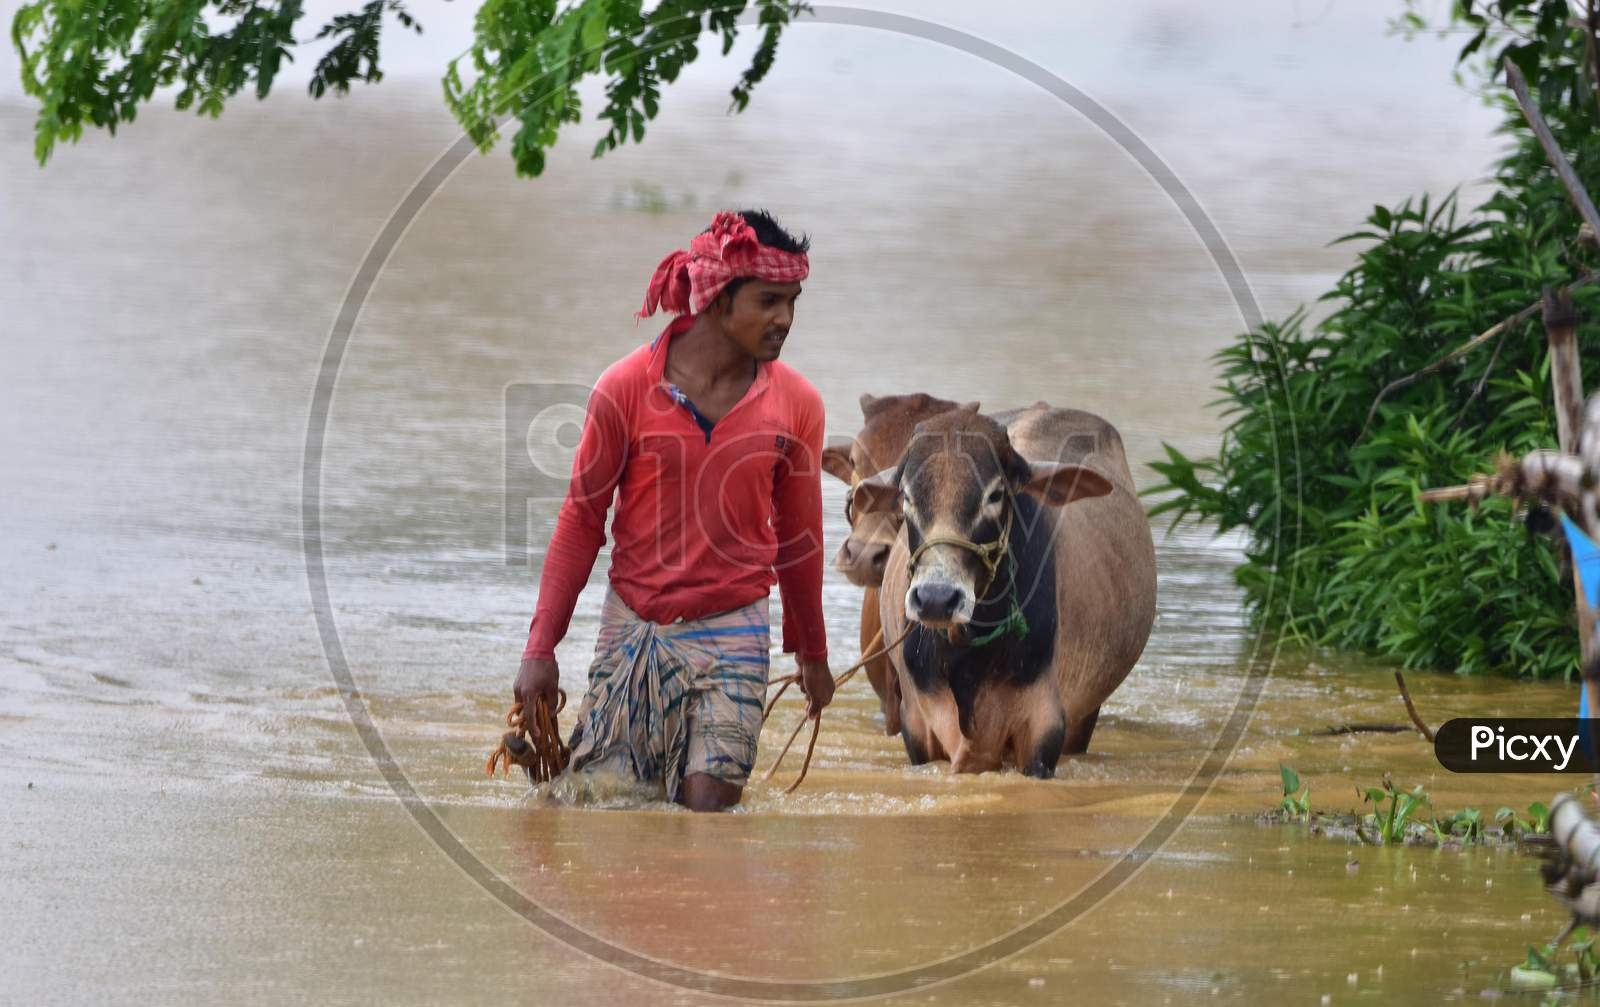 A villager with his cattle wades his way through floodwaters in a flood-affected village in Nagaon, Assam on July 22, 2020